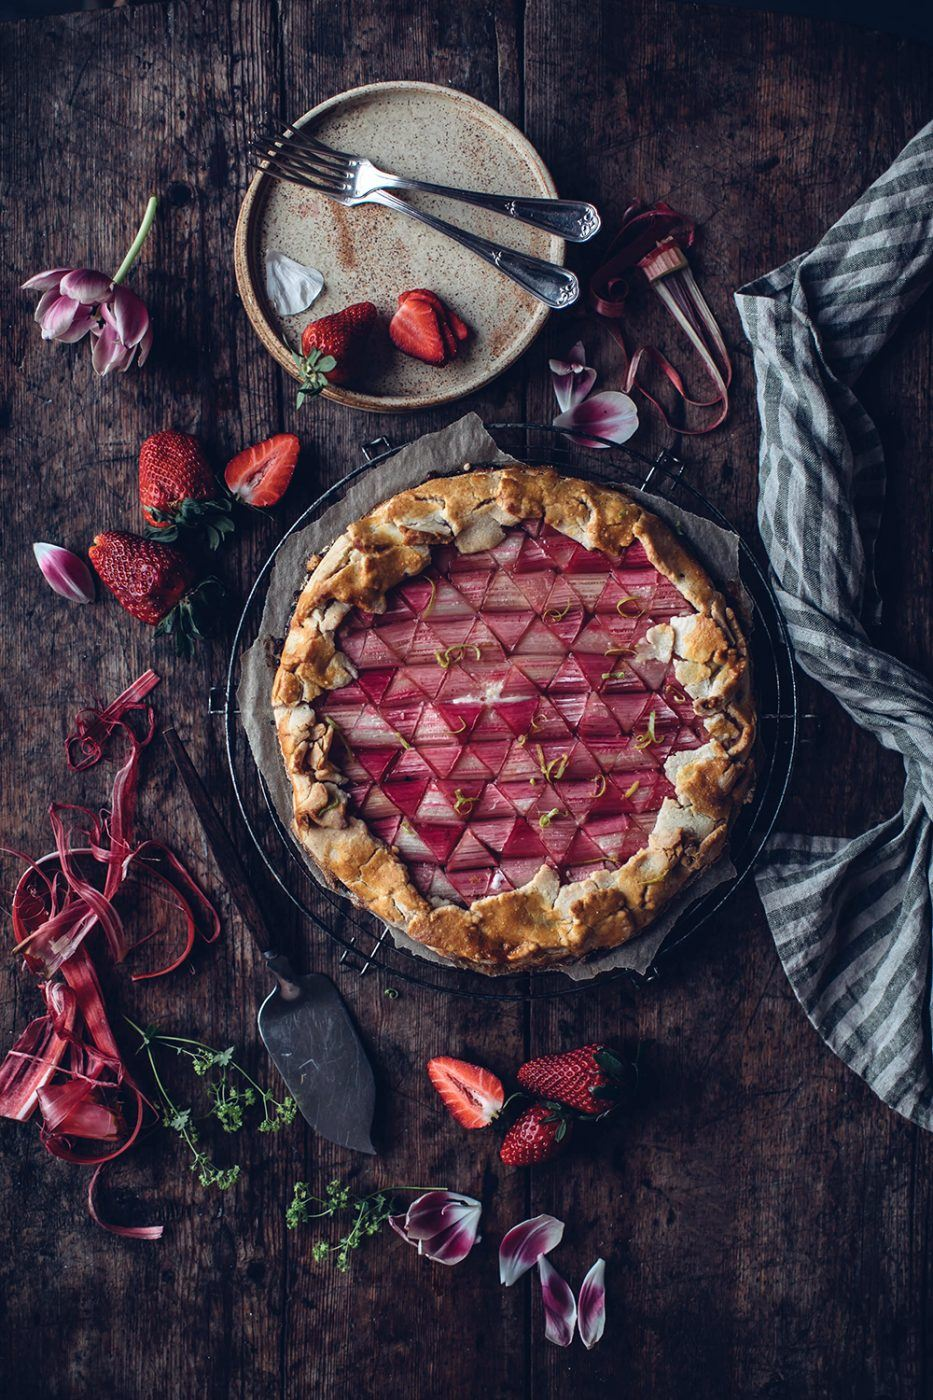 Image for Gluten-free Rhubarb Galette